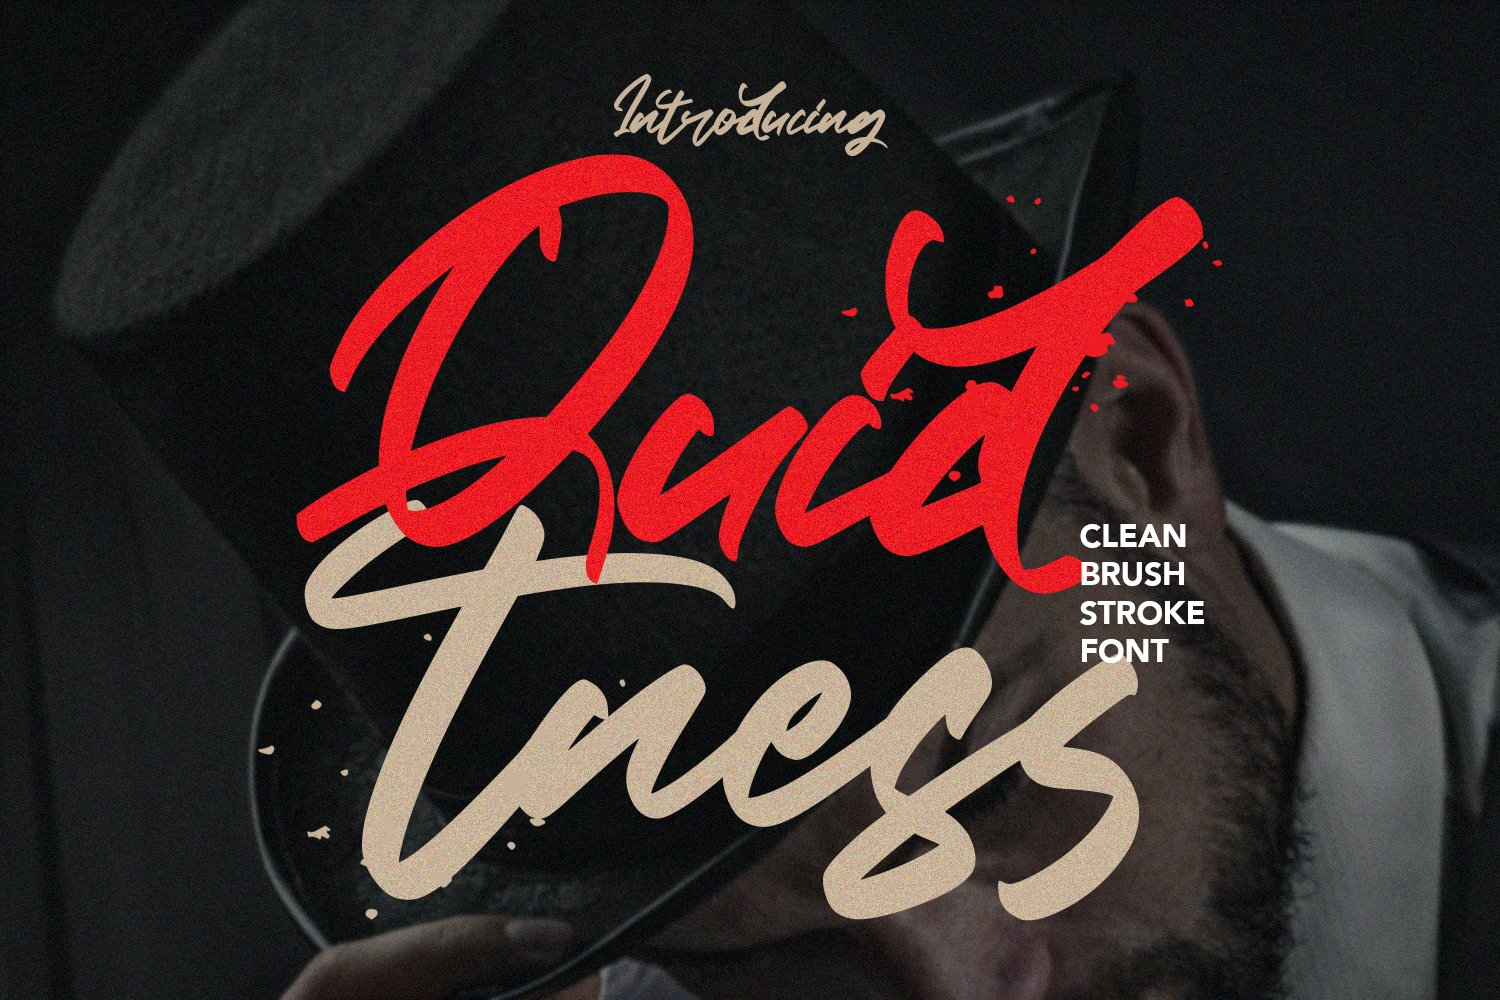 Quidtness - Clean Brush Stroke Font example image 1